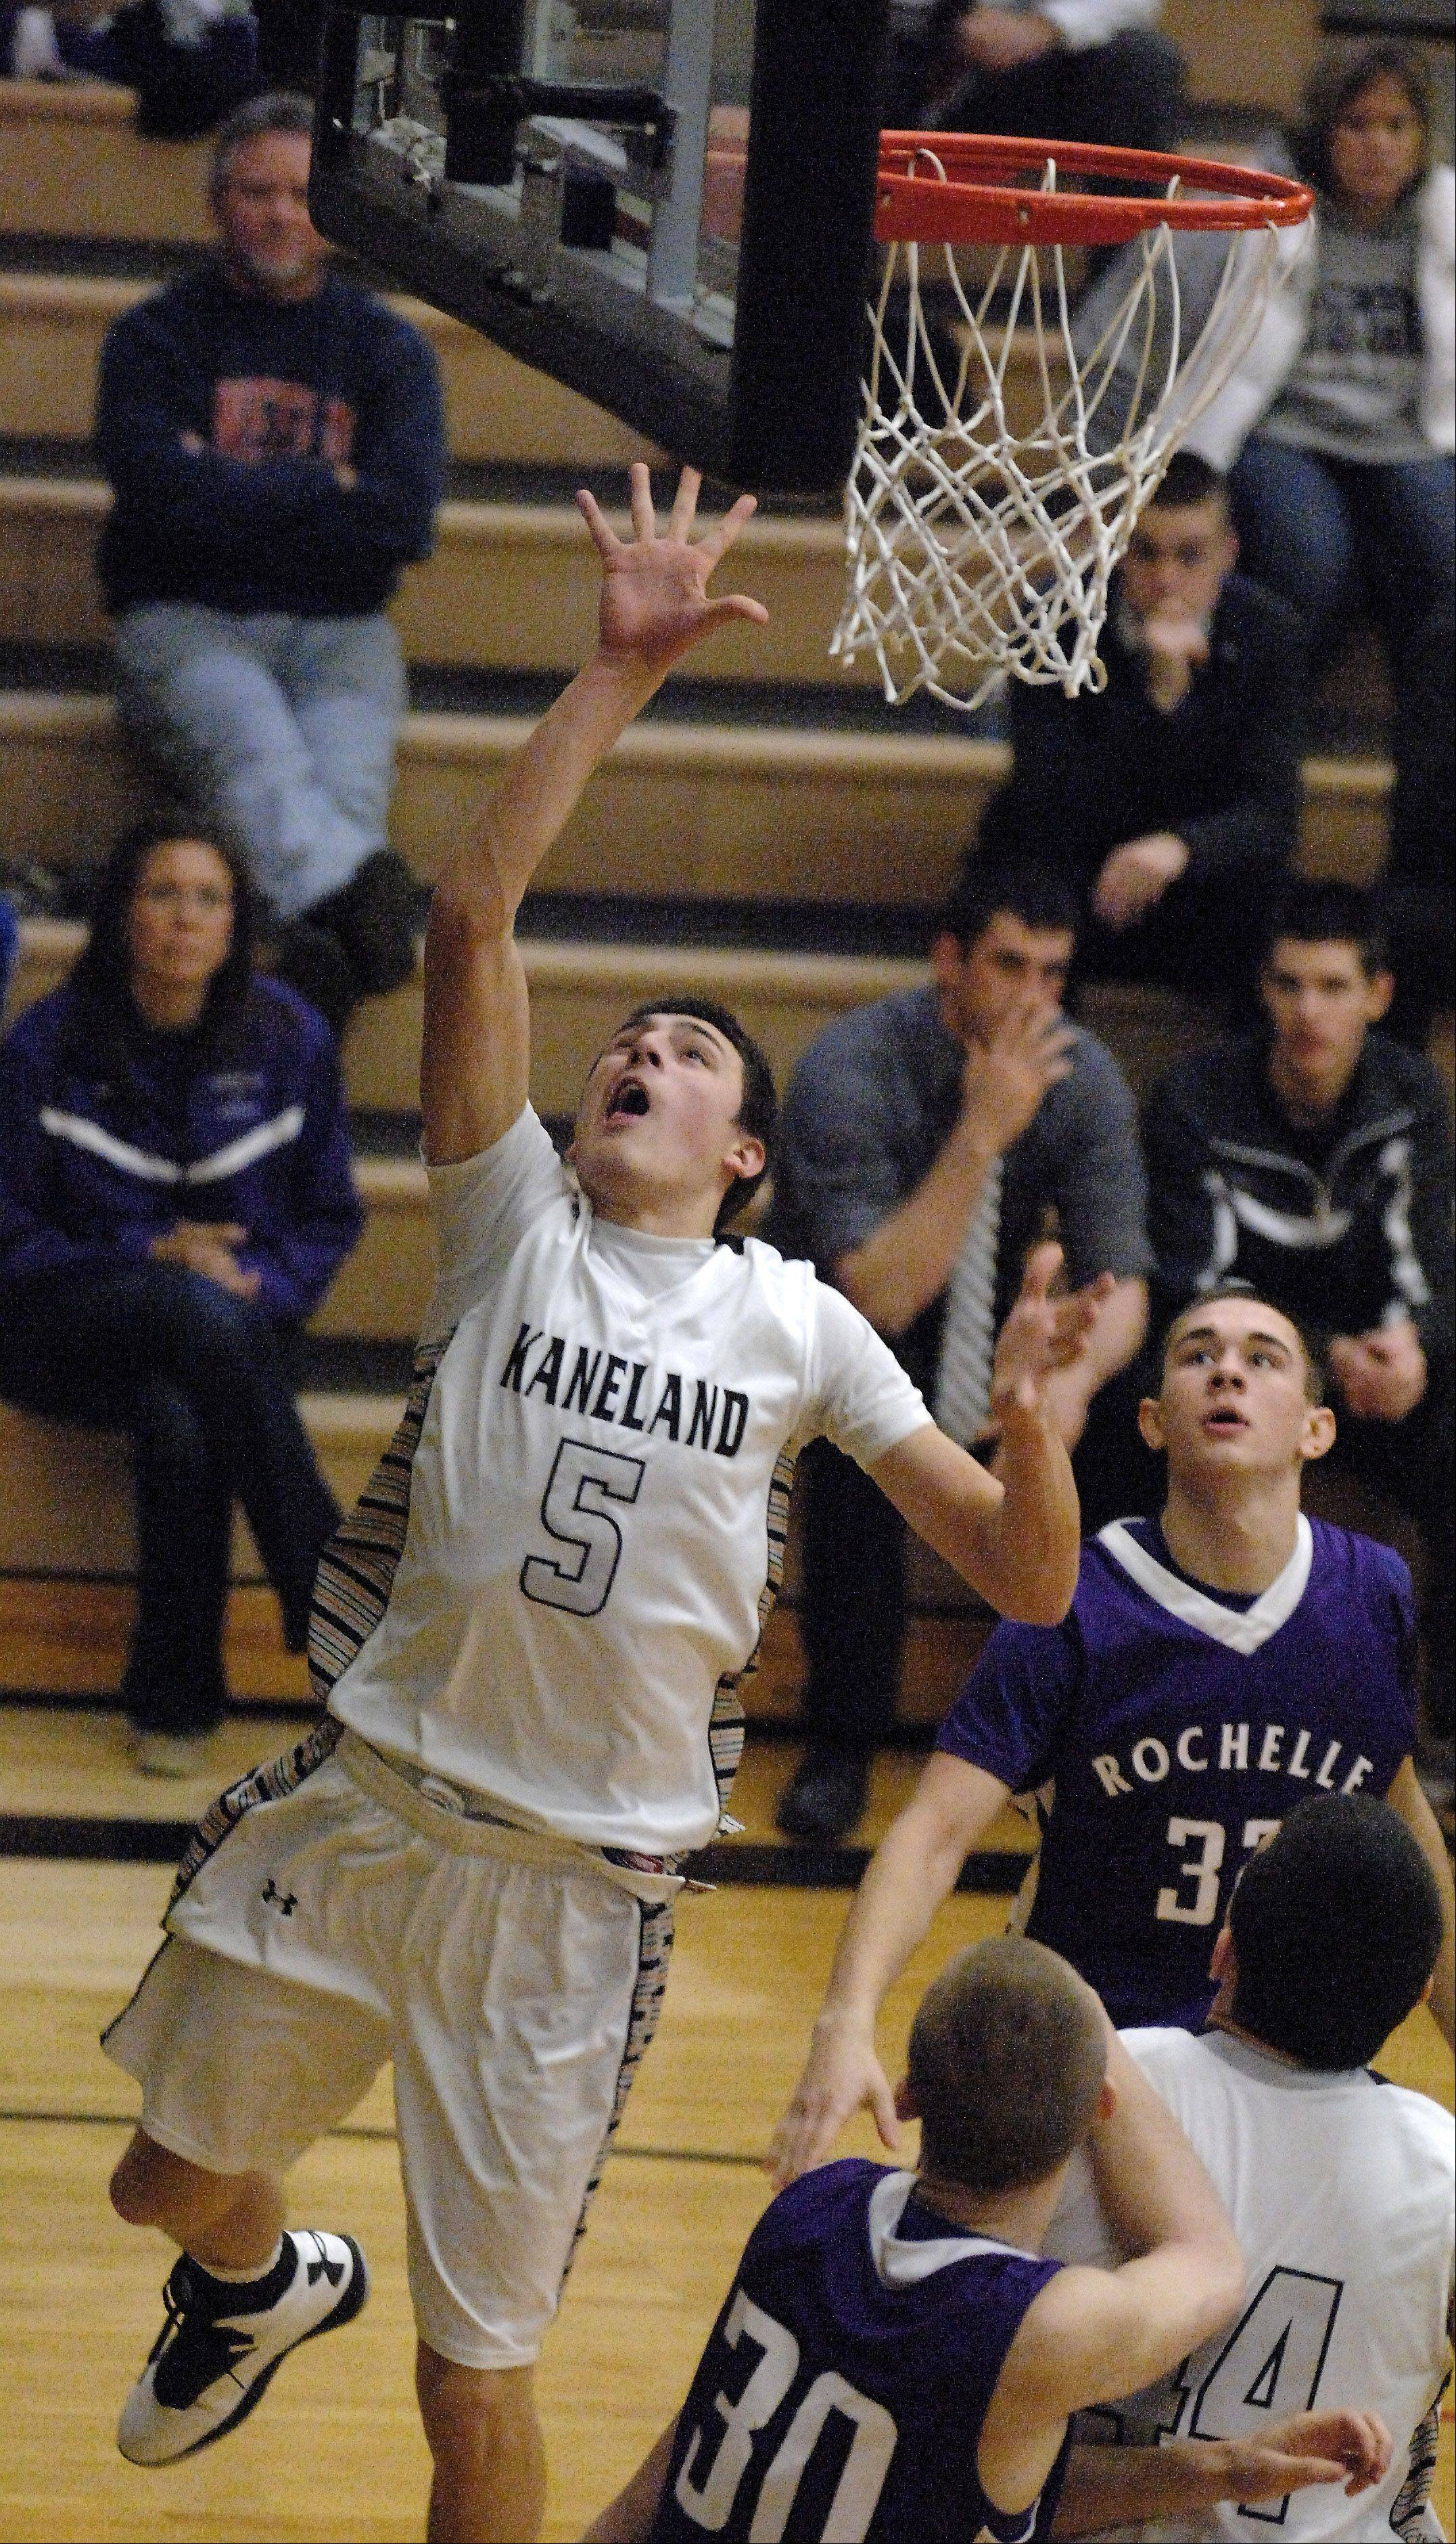 Images from the Rochelle vs. Kaneland boys basketball game Thursday, January 10, 2013.